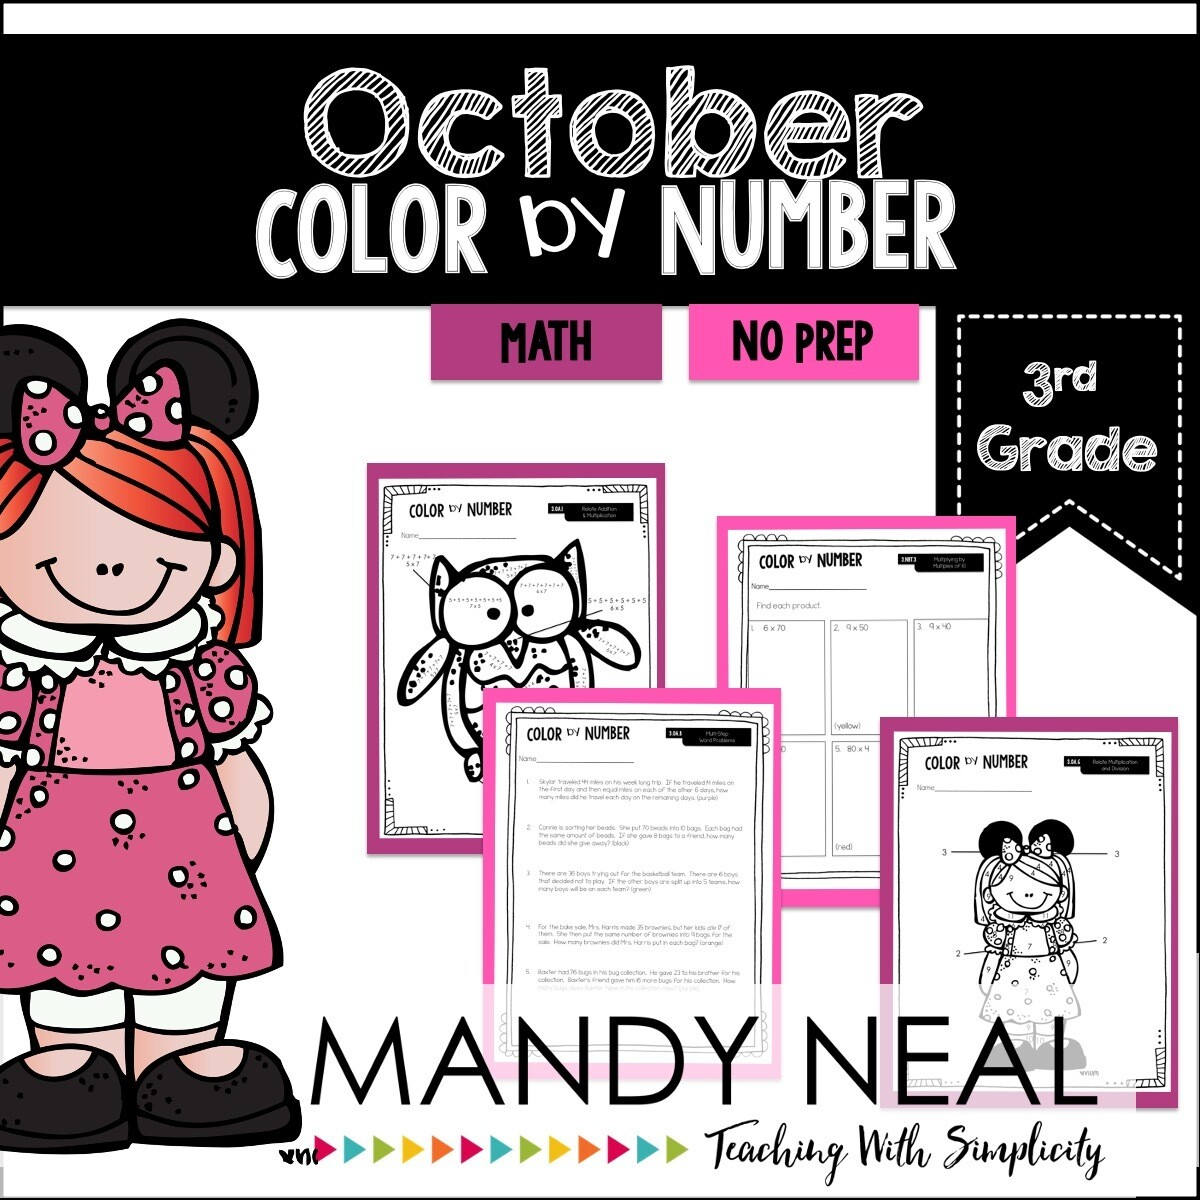 October Color By Number for 3rd Grade Math